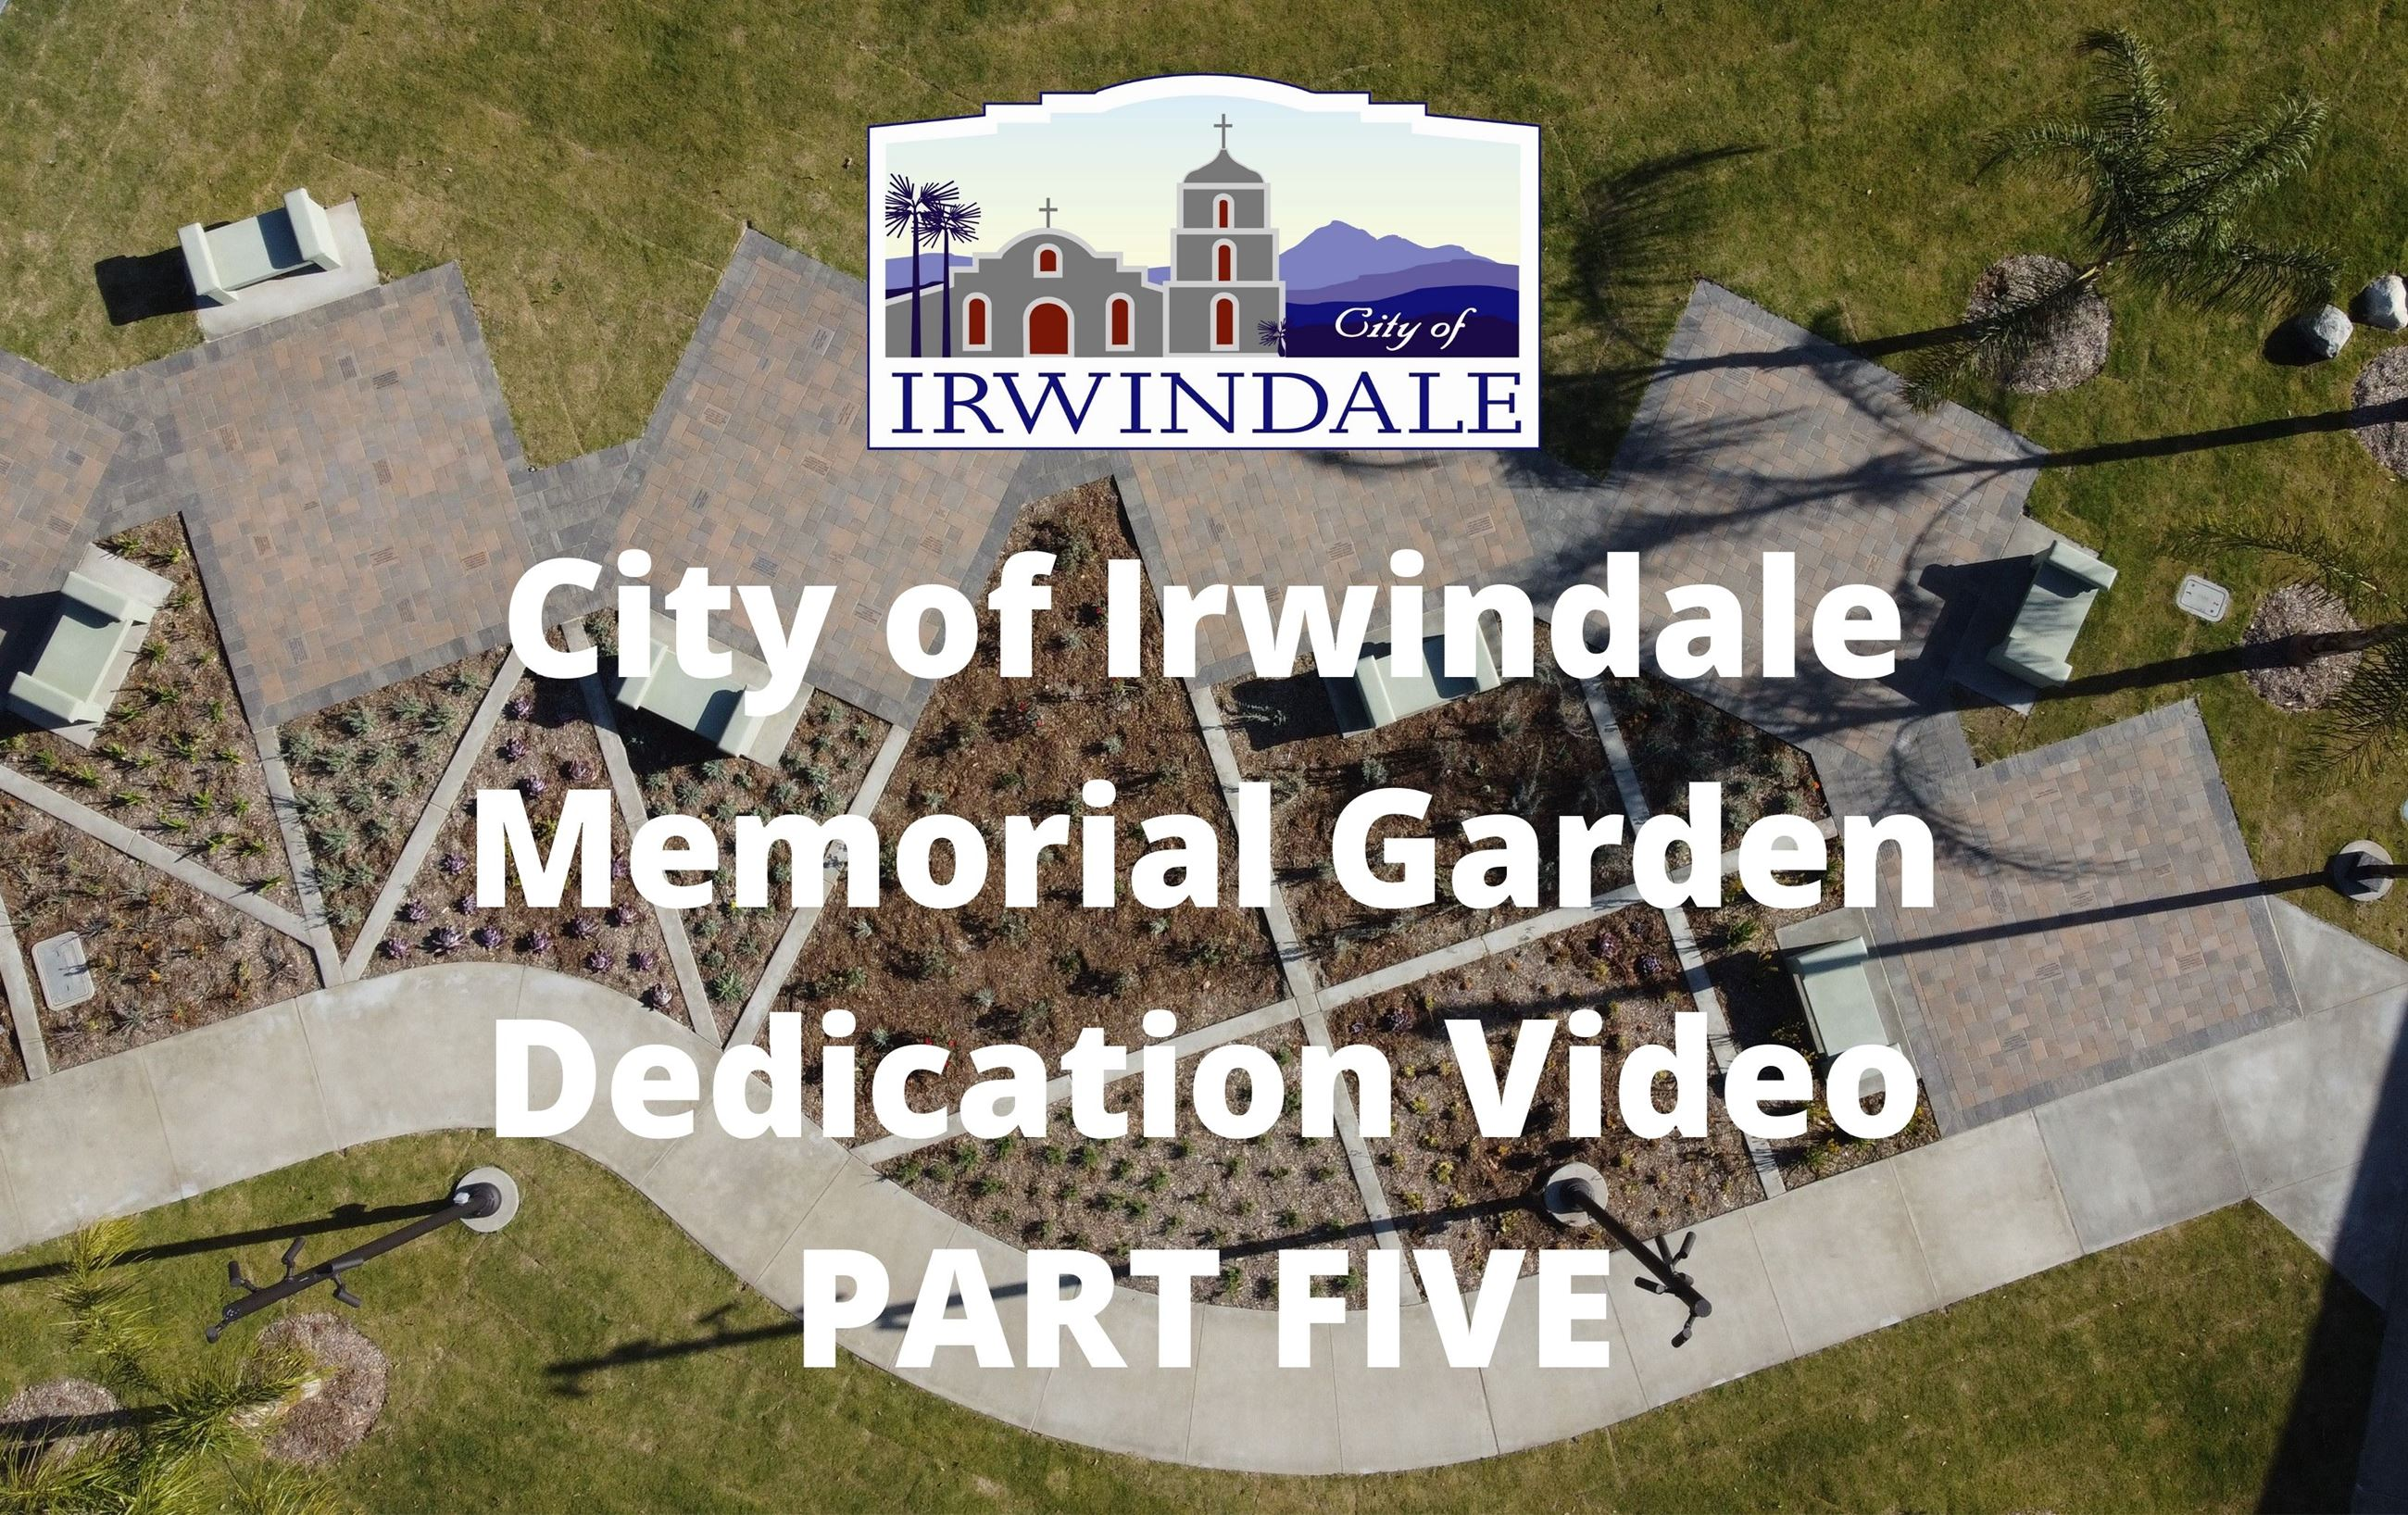 City of Irwindale Memorial Garden Dedication Video Part FIve